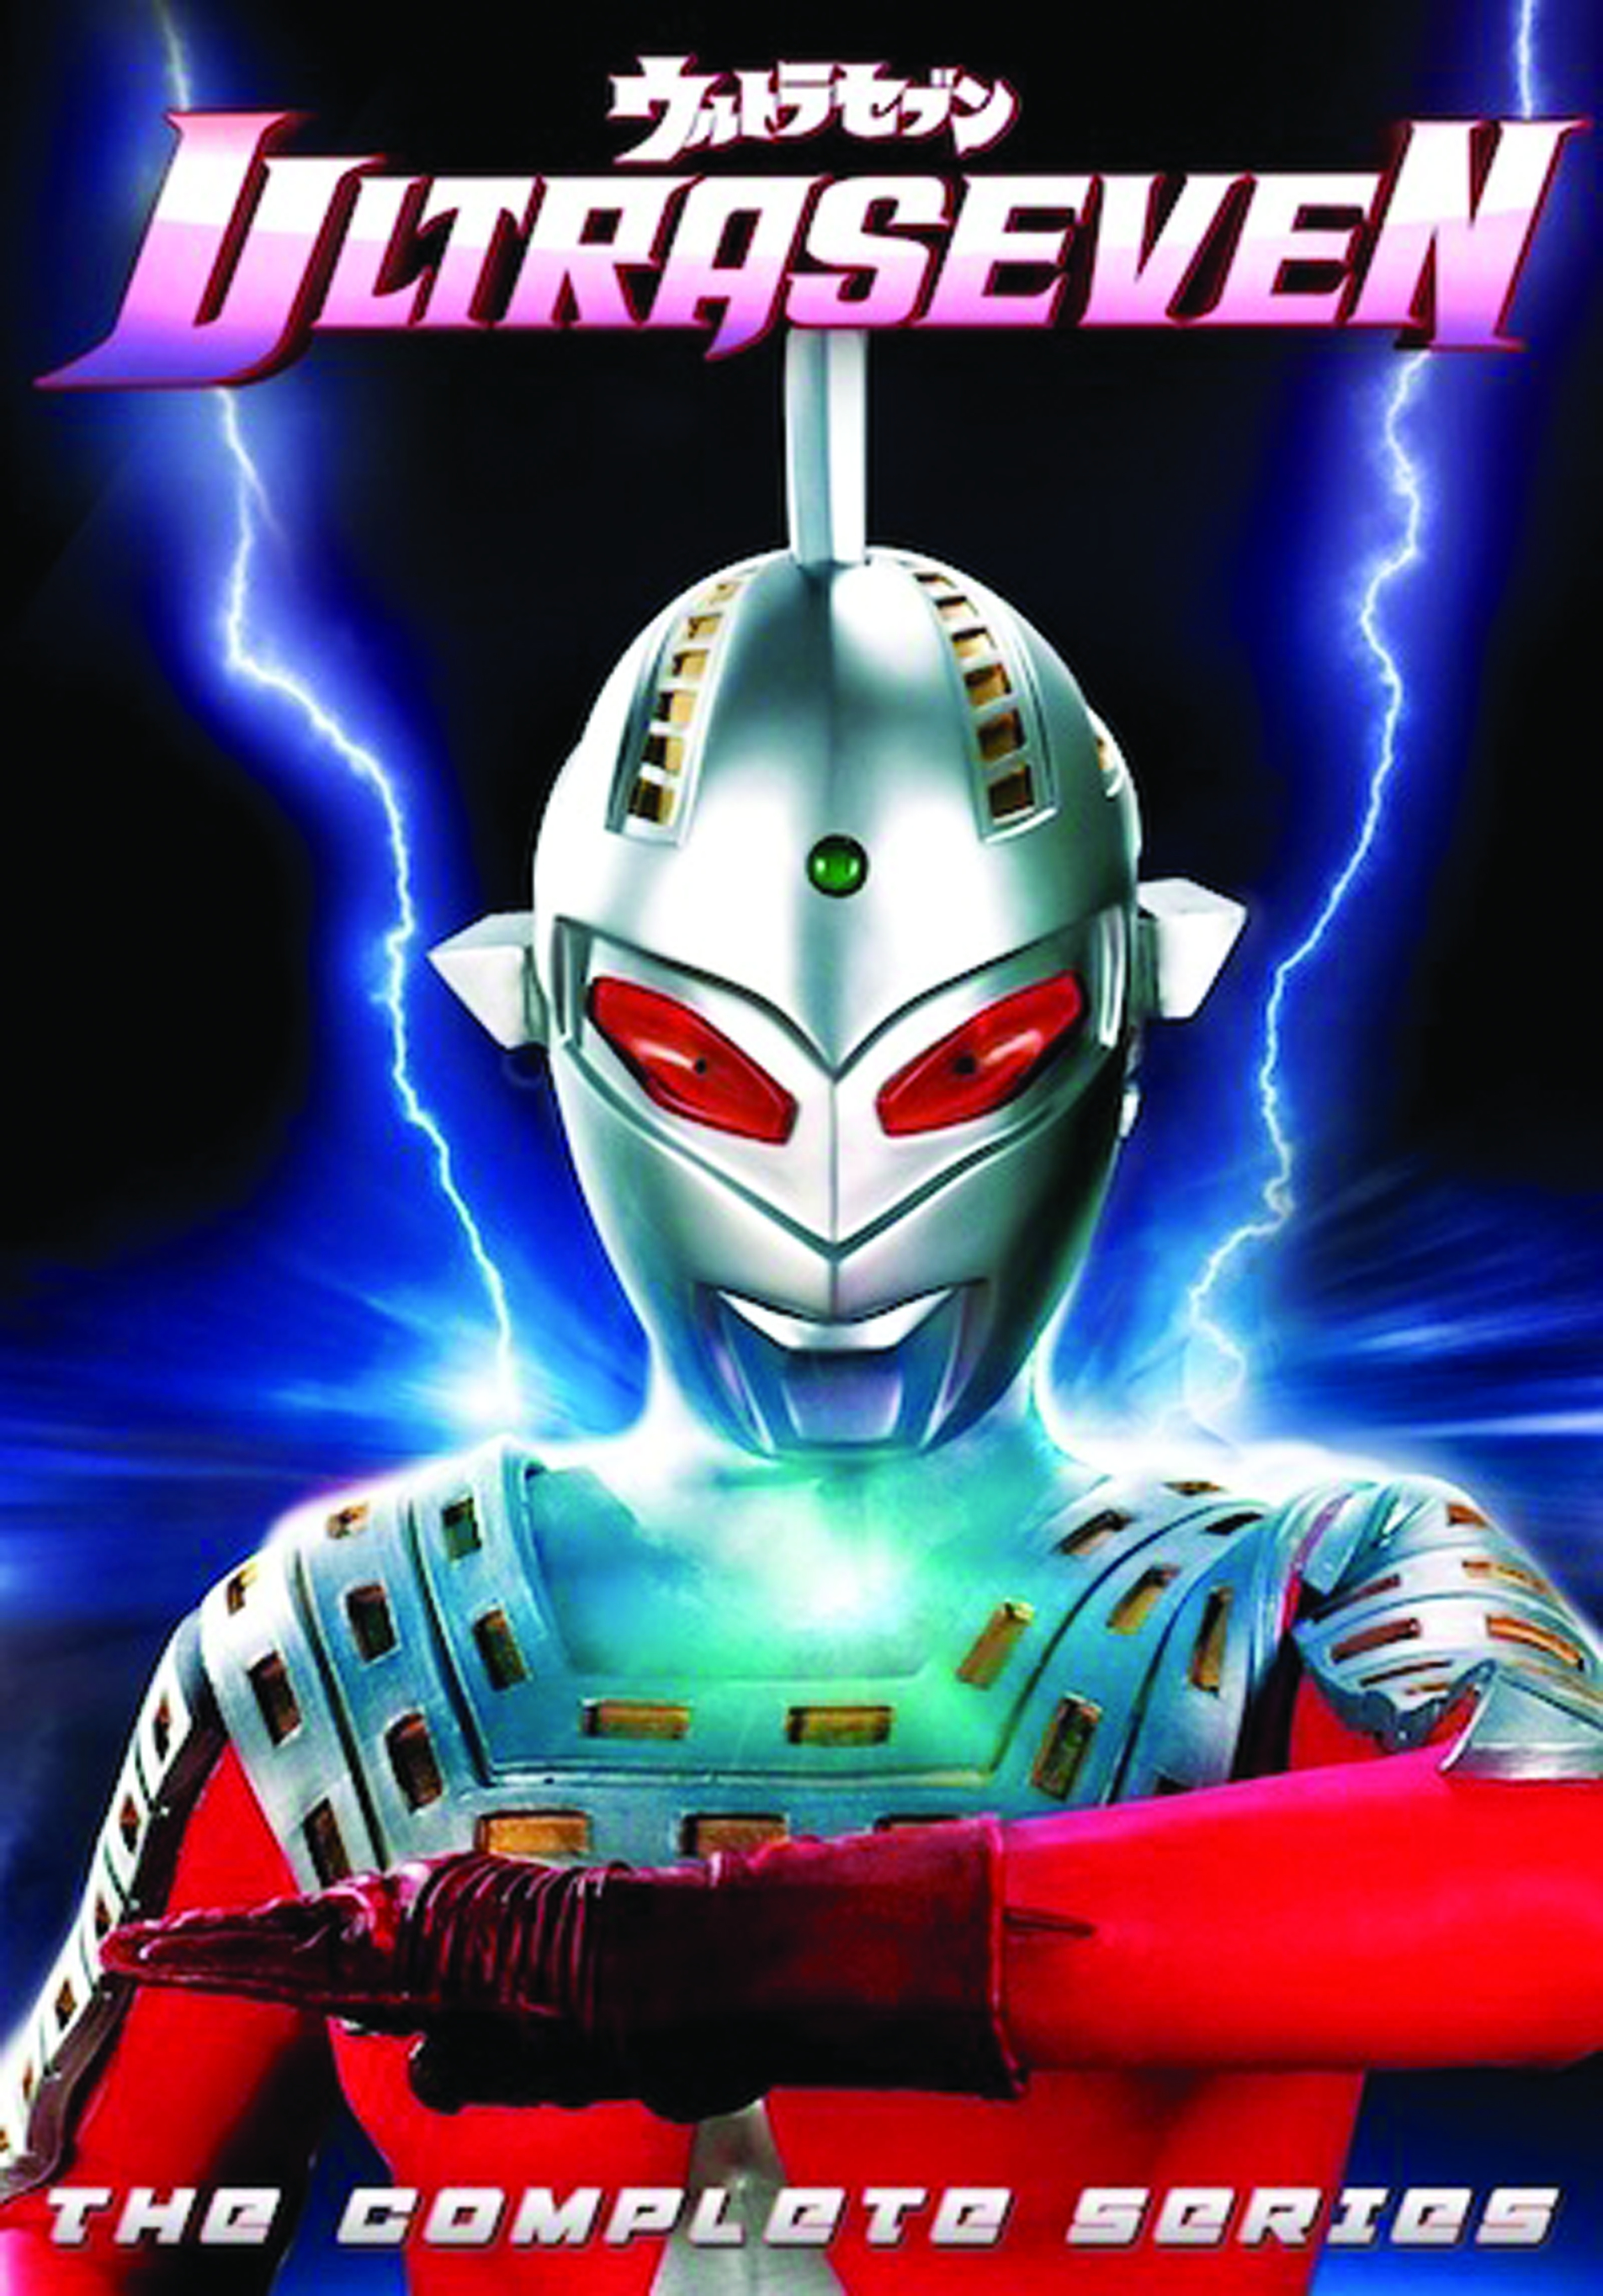 ULTRASEVEN COMP SER DVD